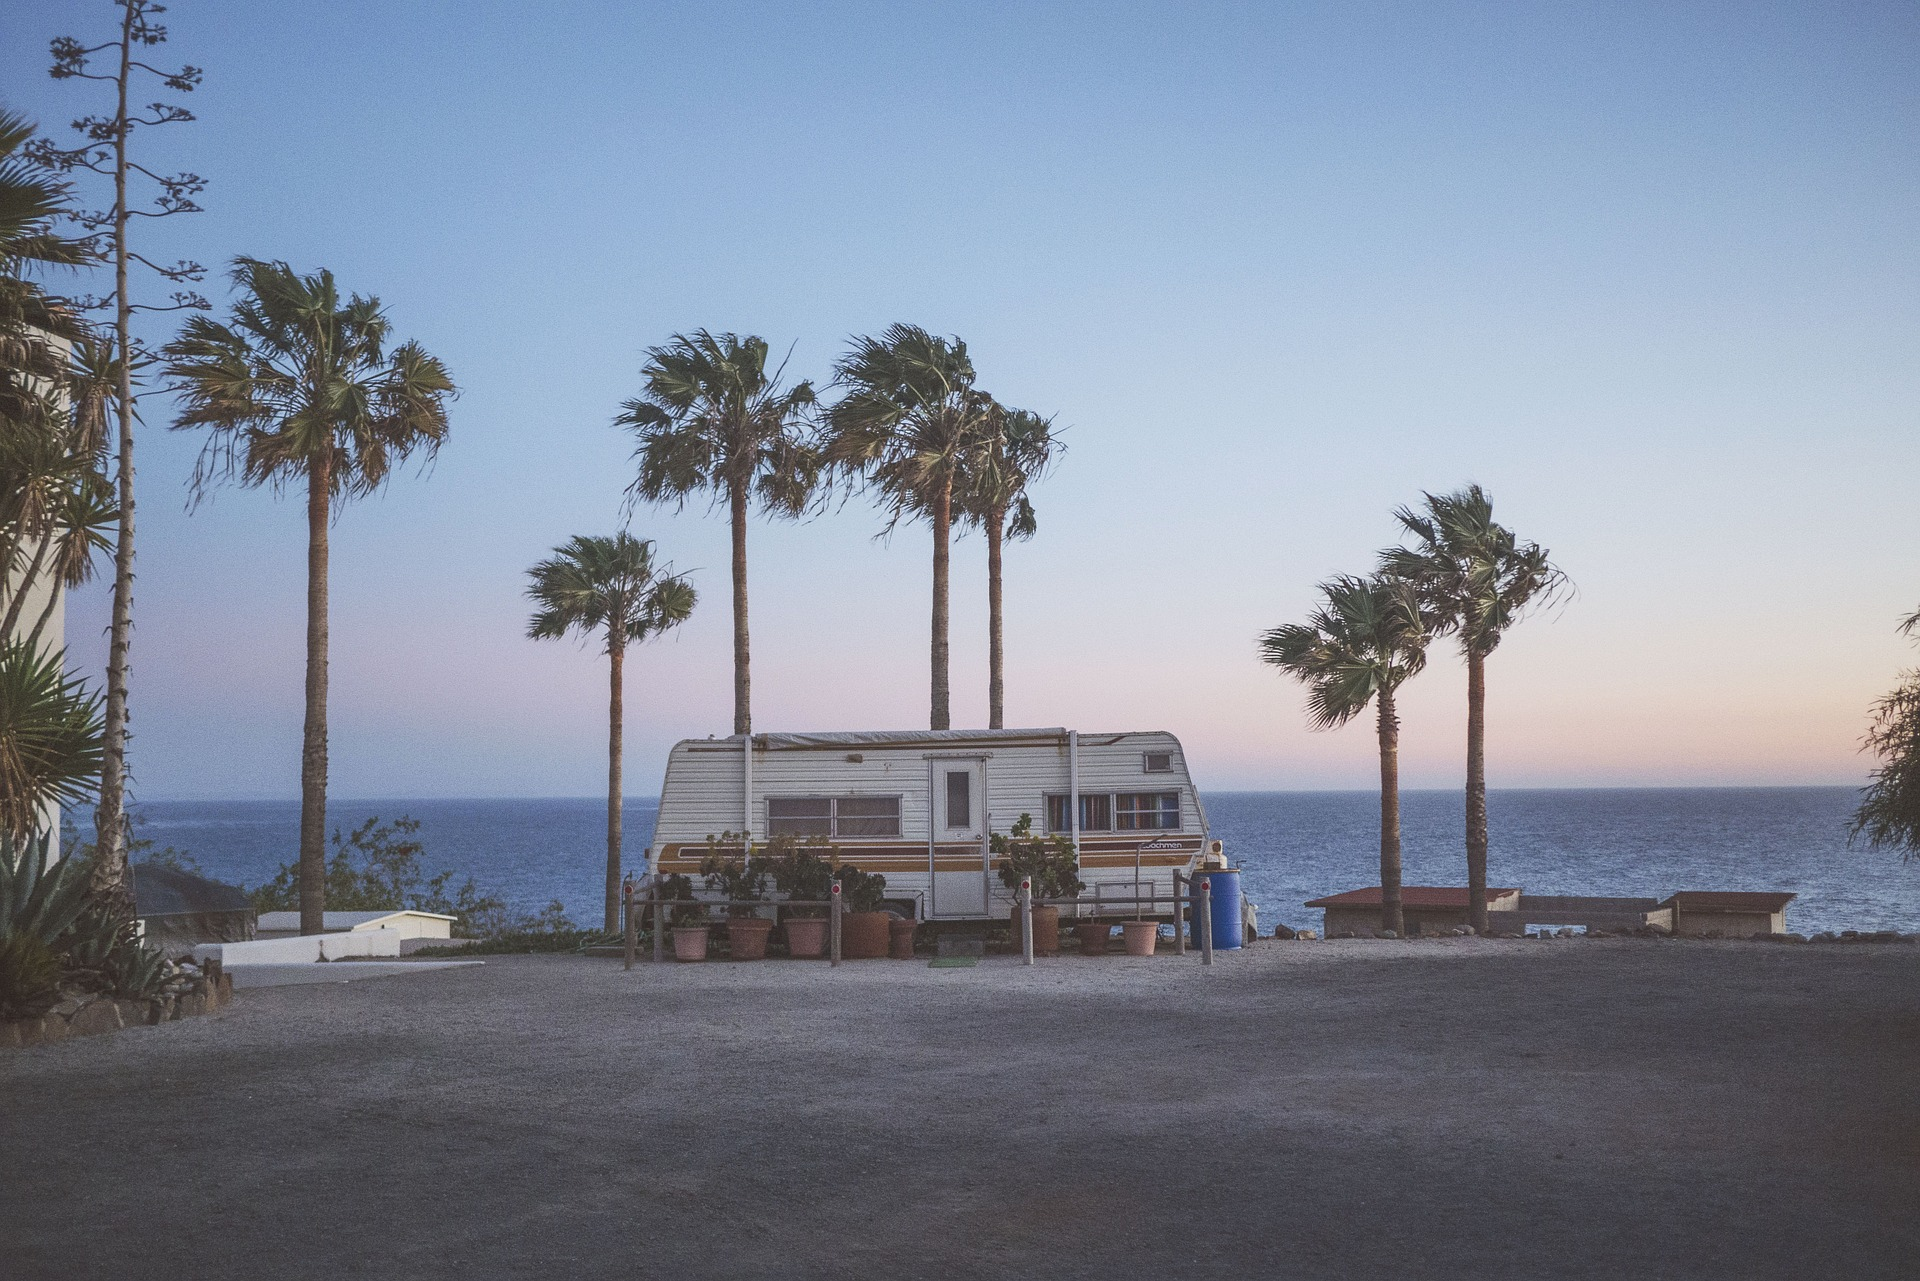 Palm trees bend over a camping trailer on a windy day along the coast.